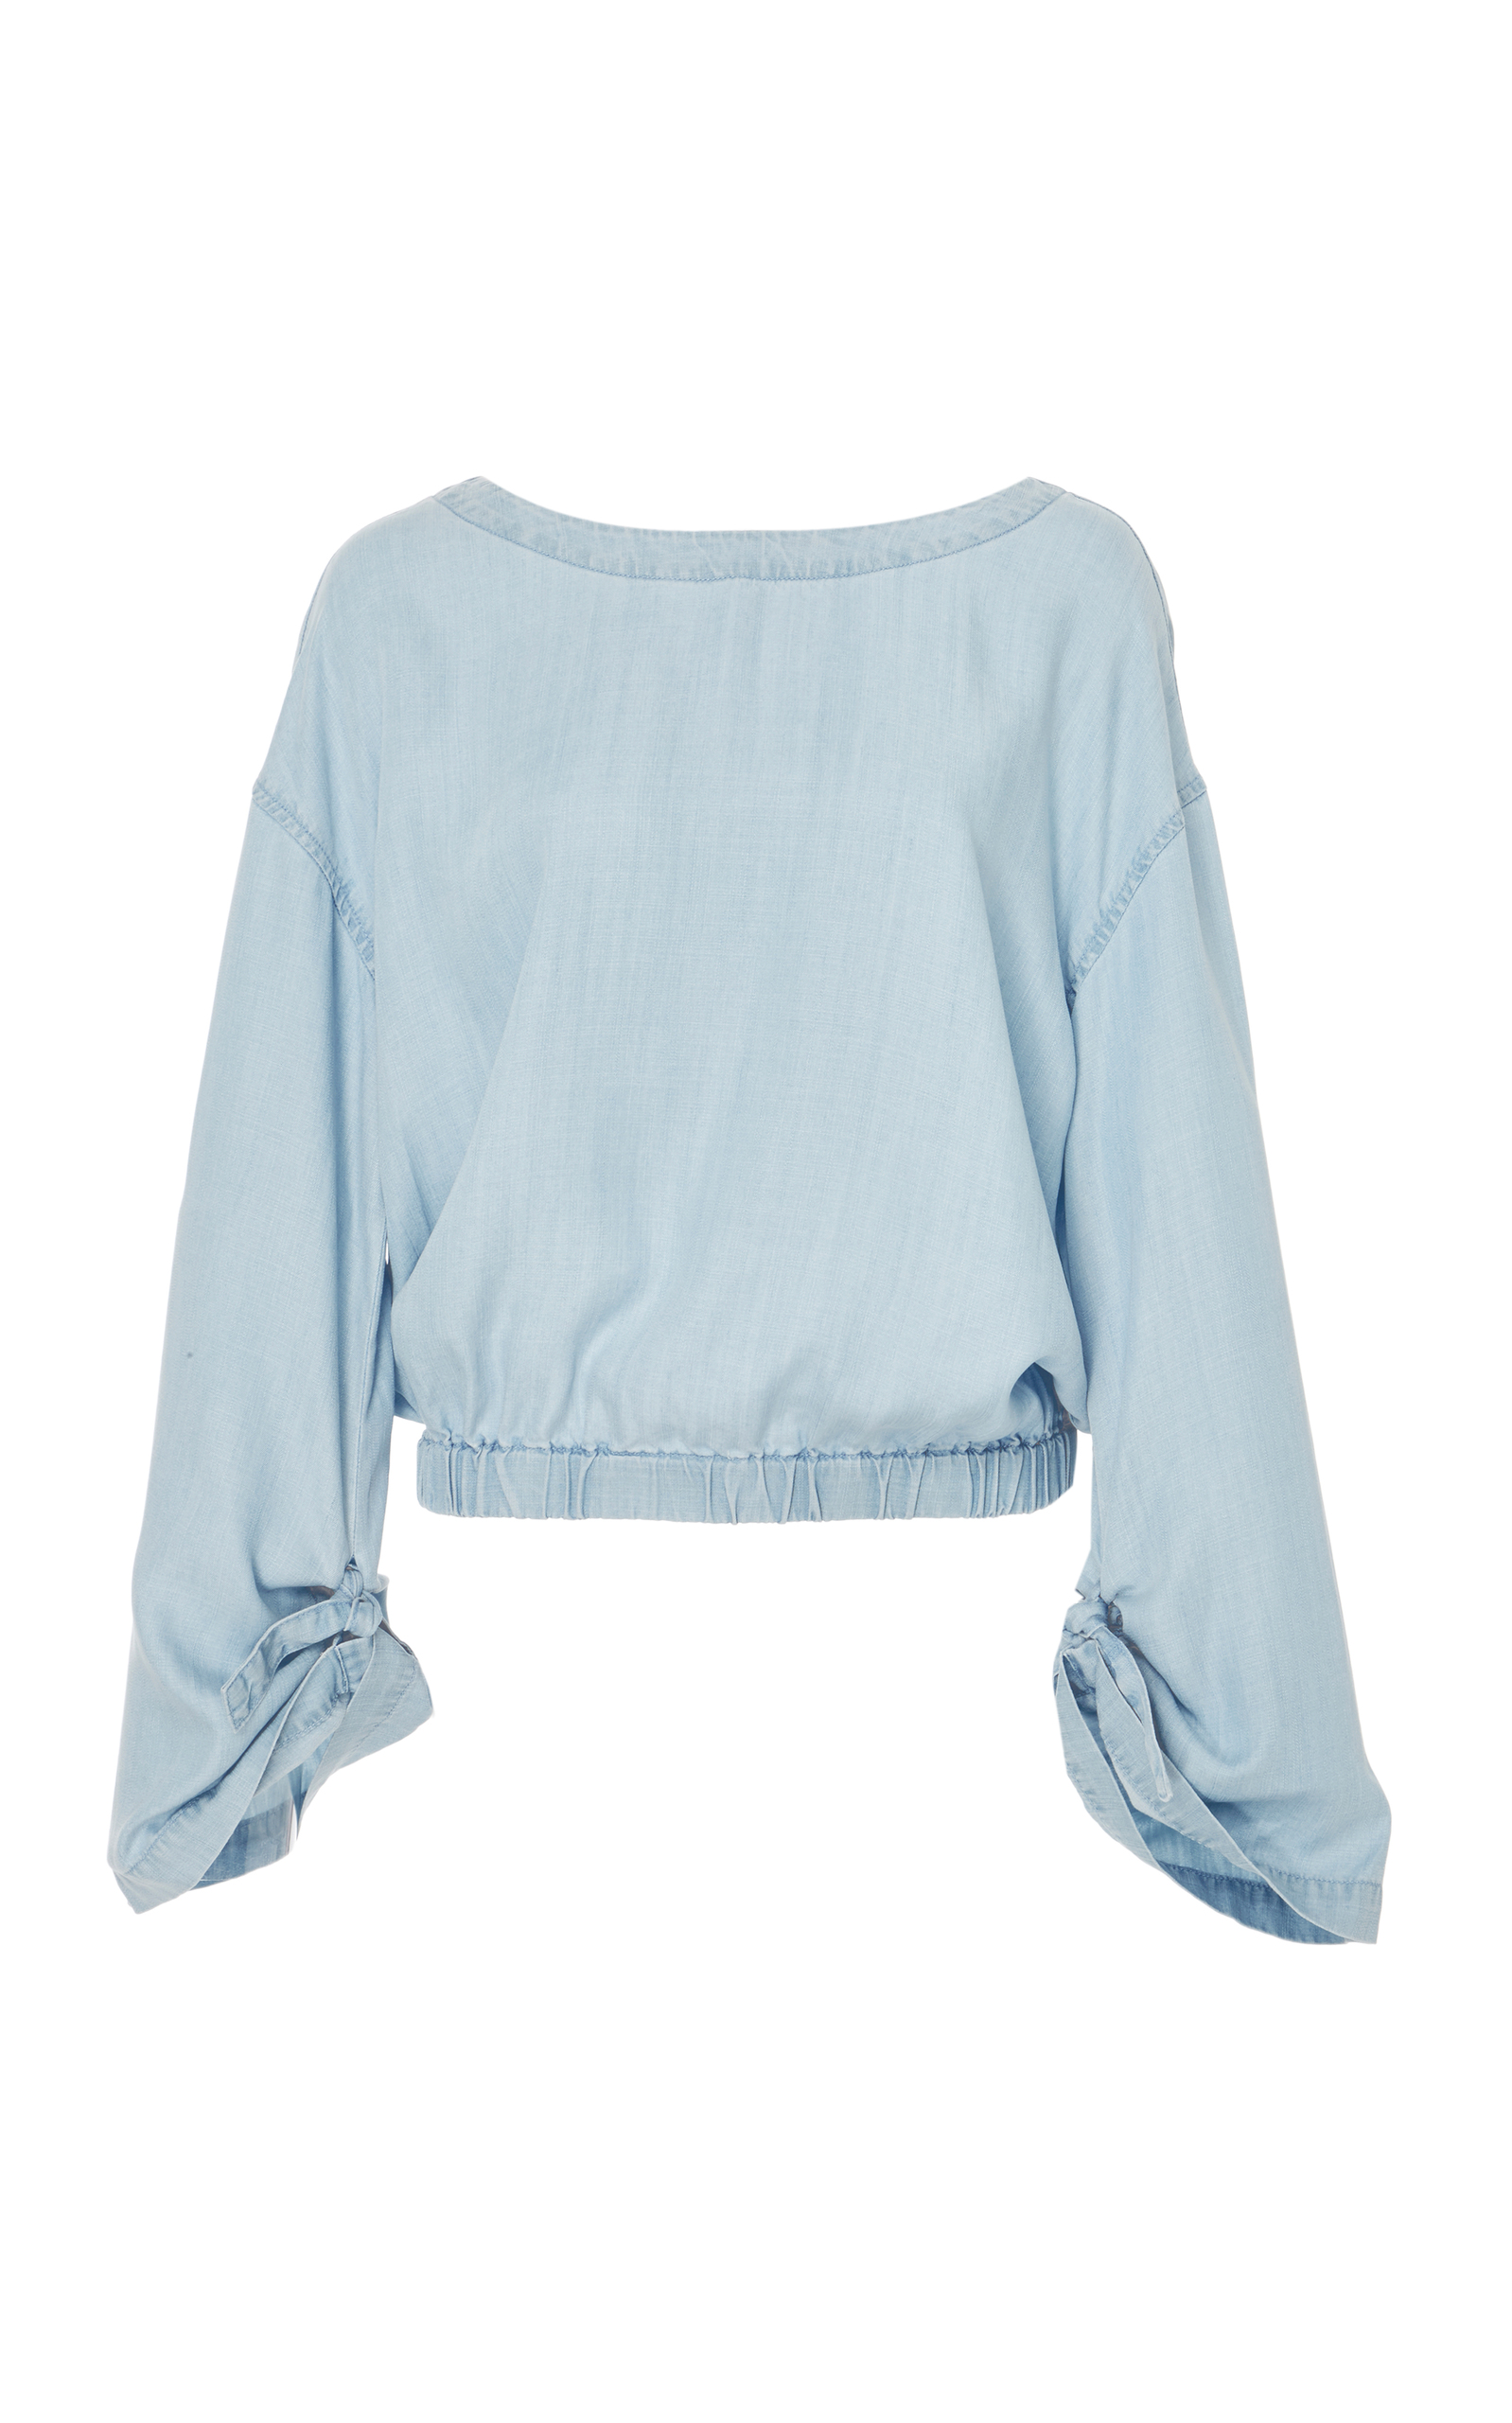 57f8698f79 Cinched Denim Chambray Top by FRAME